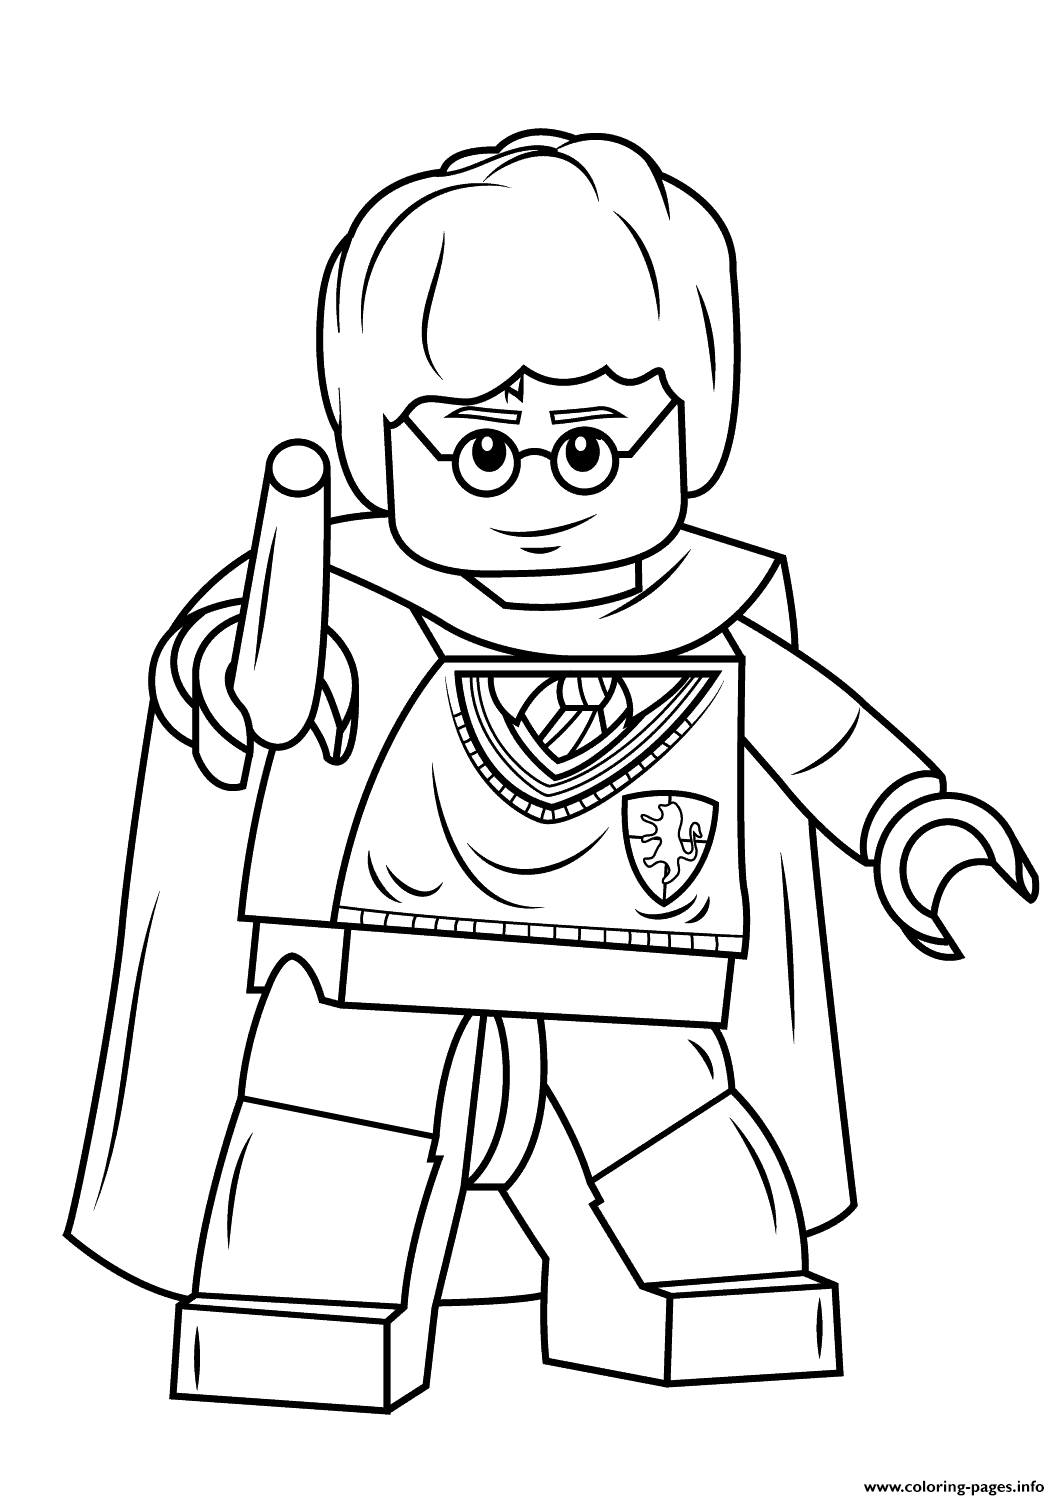 Awesome Print Lego Harry Potter With Wand Coloring Pages